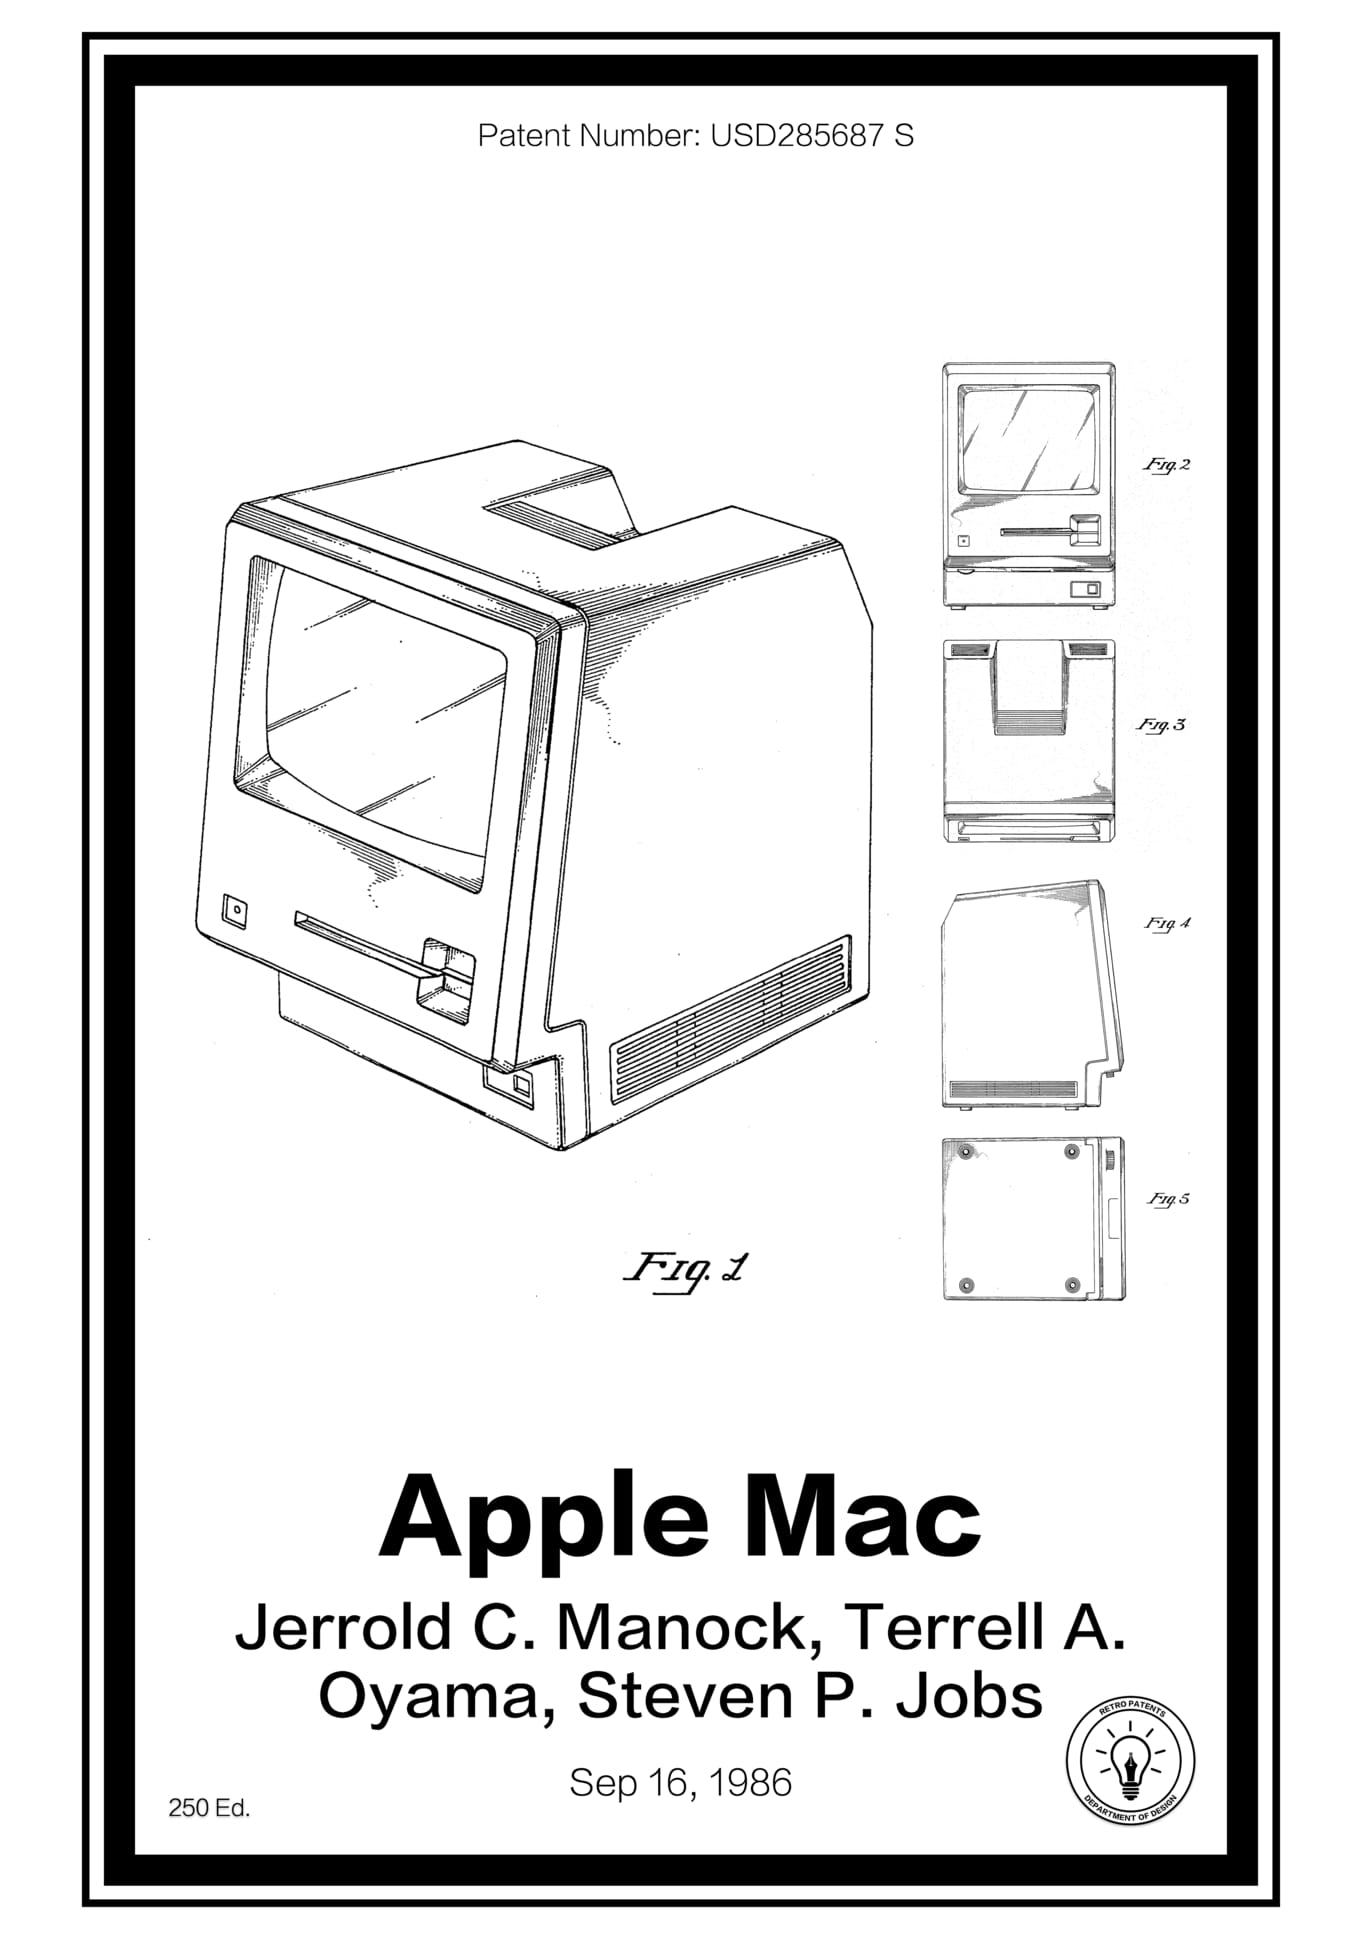 ONE TIME USE: Apple Mac Computer patent